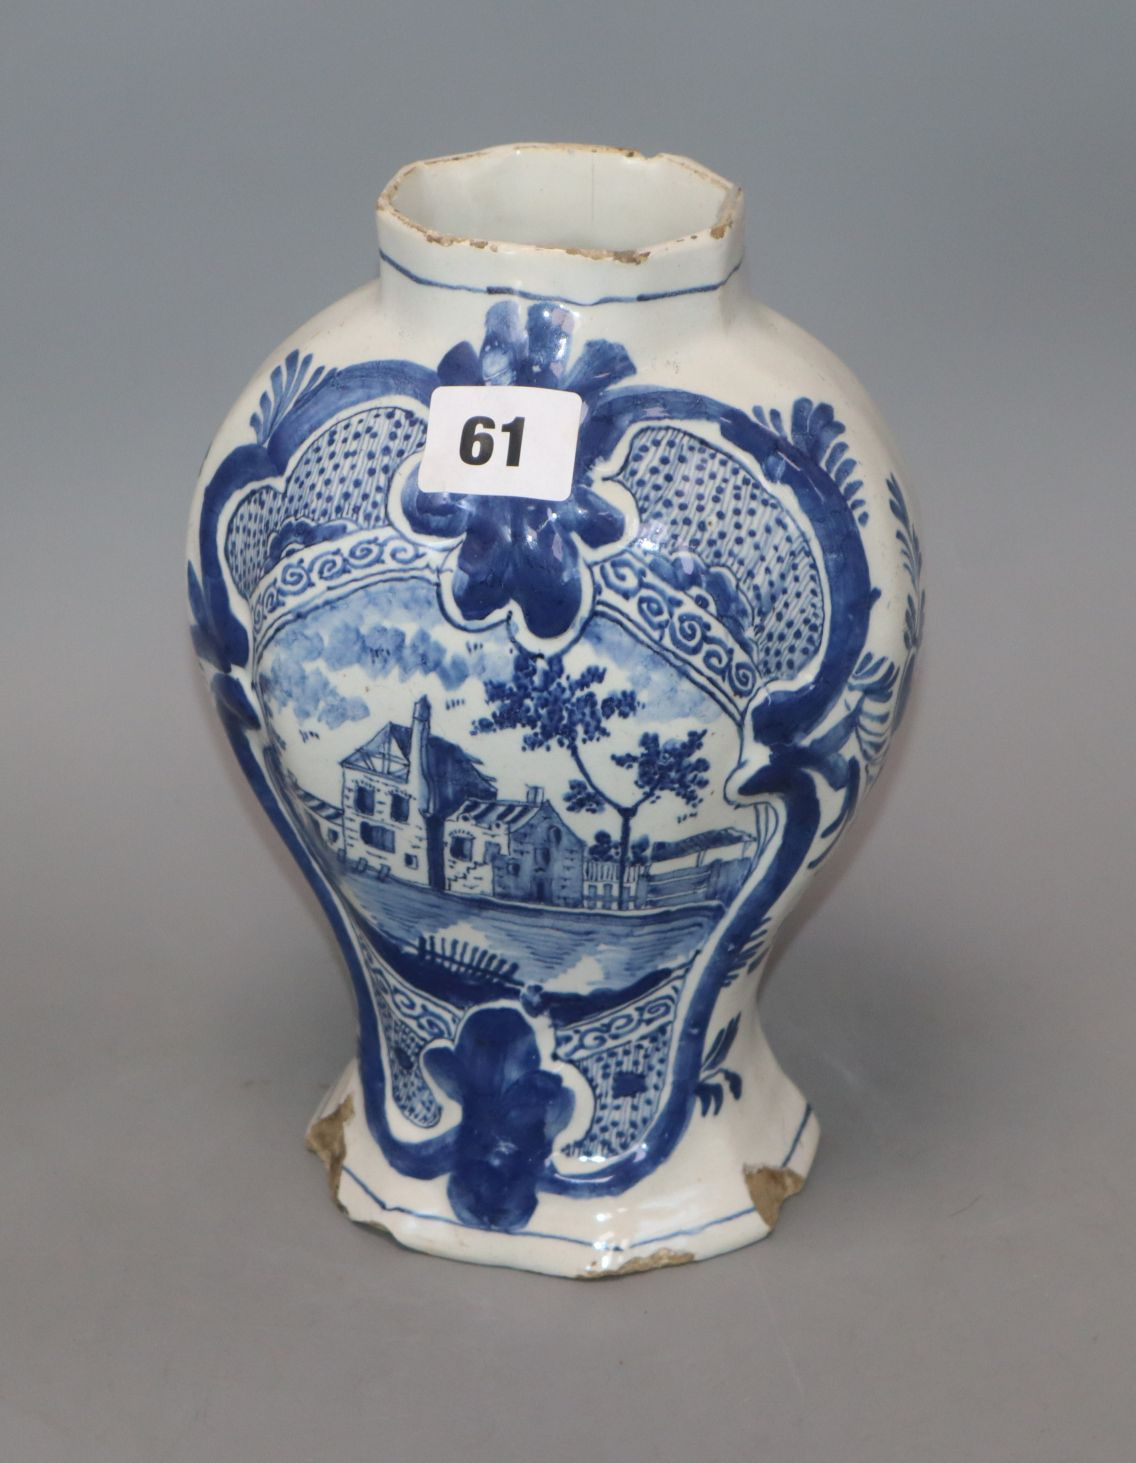 Lot 61 - An 18th/19th century Delft blue and white vase height 22cm